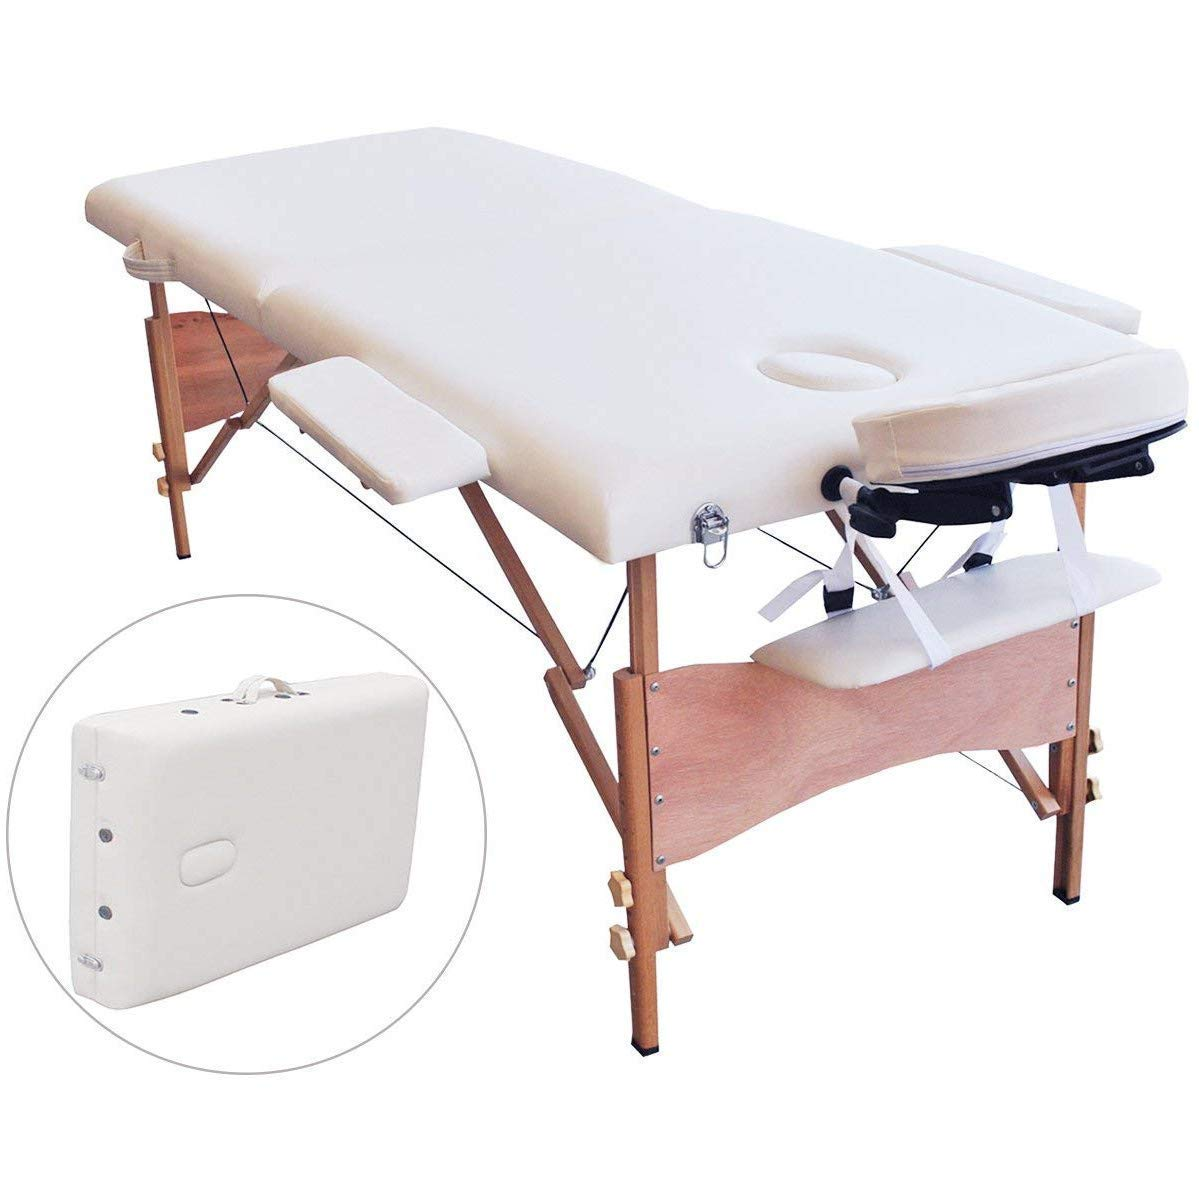 Folding Massage Table 84 Professional Portable 2 Fold Facial Massage Bed Salon SPA with Backrest with Carry Case White